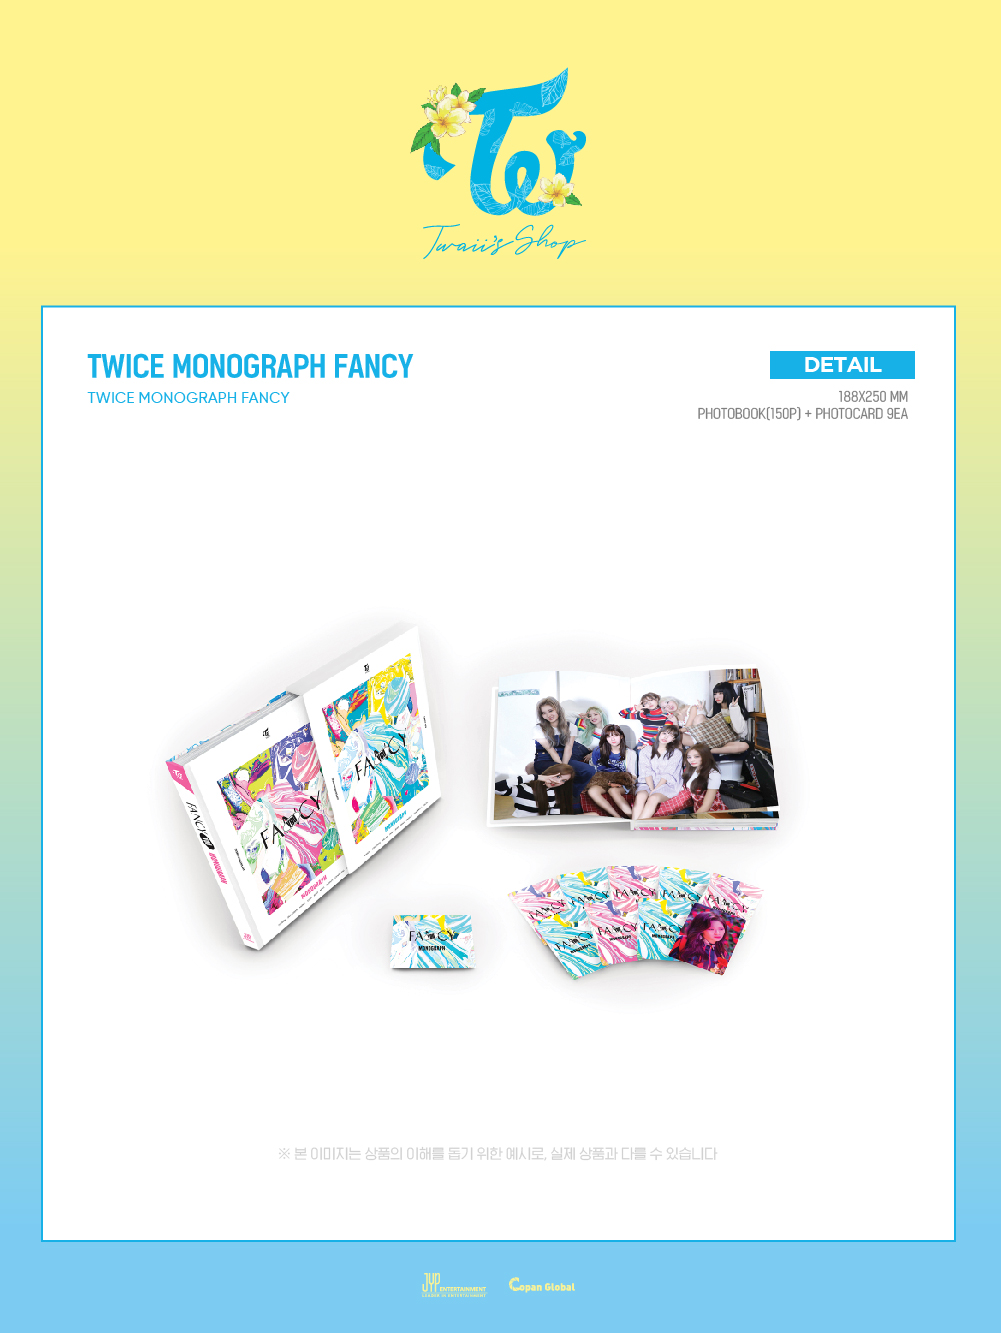 TWICE Fancy You Monograph.png